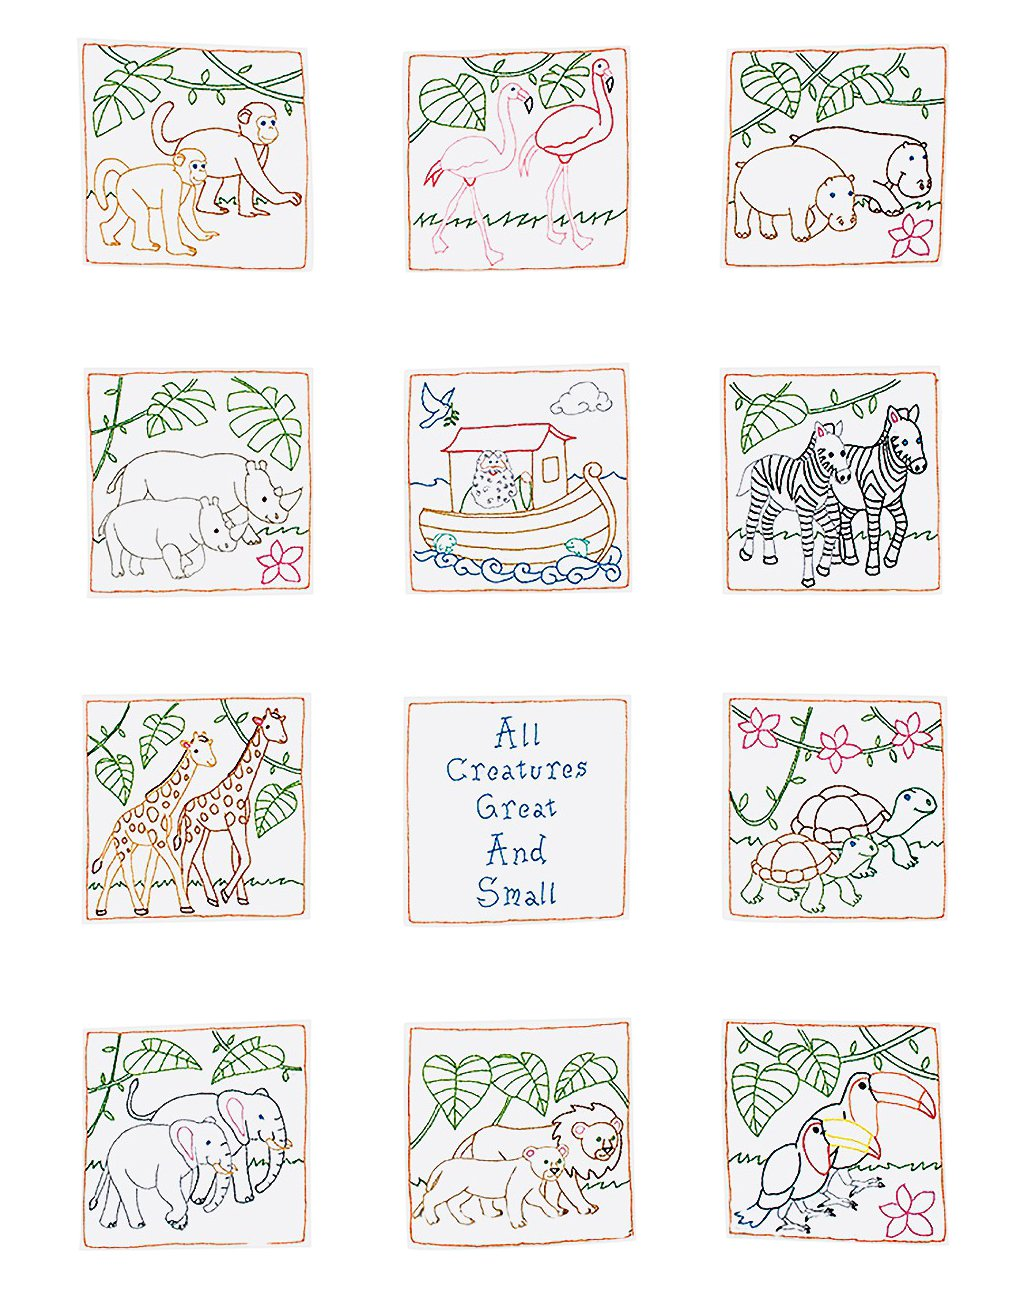 Jack Dempsey Stamped White Nursery Quilt Blocks, 9-Inch by 9-Inch, Noah's Ark, 12-Pack (300 890) Noah' s Ark